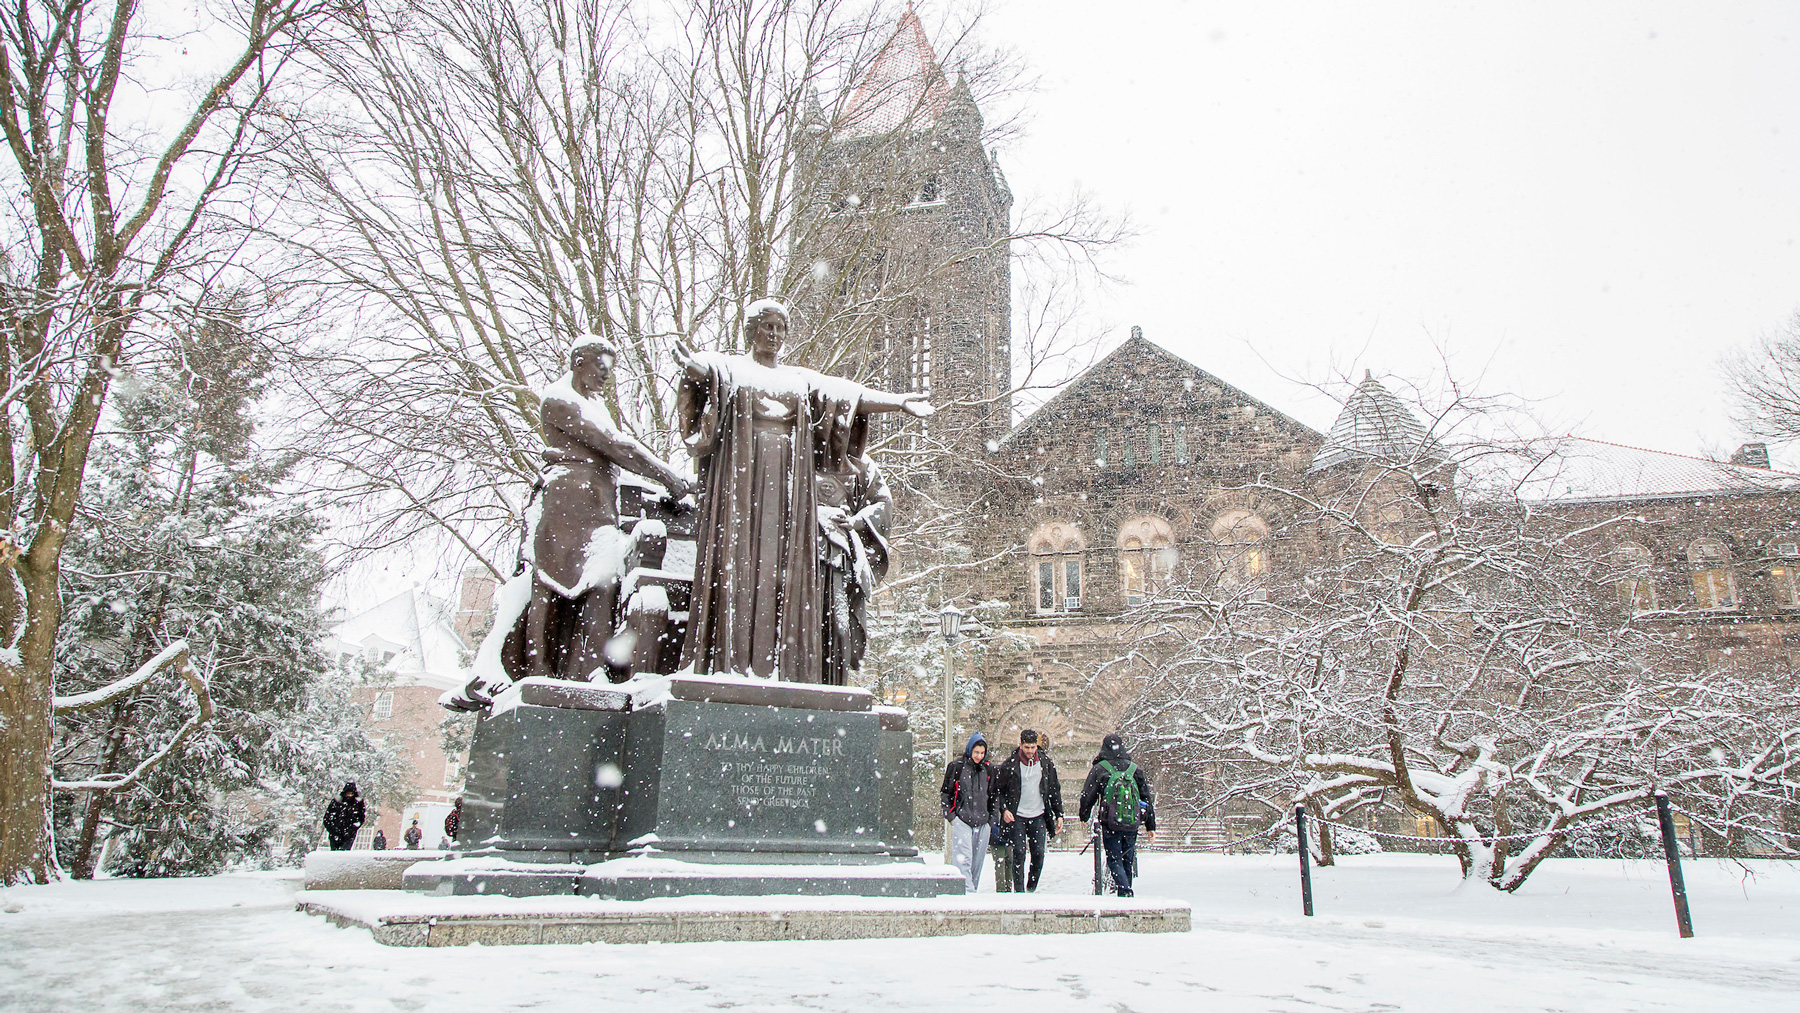 snow covered Alma Mater statue and Altgeld Hall